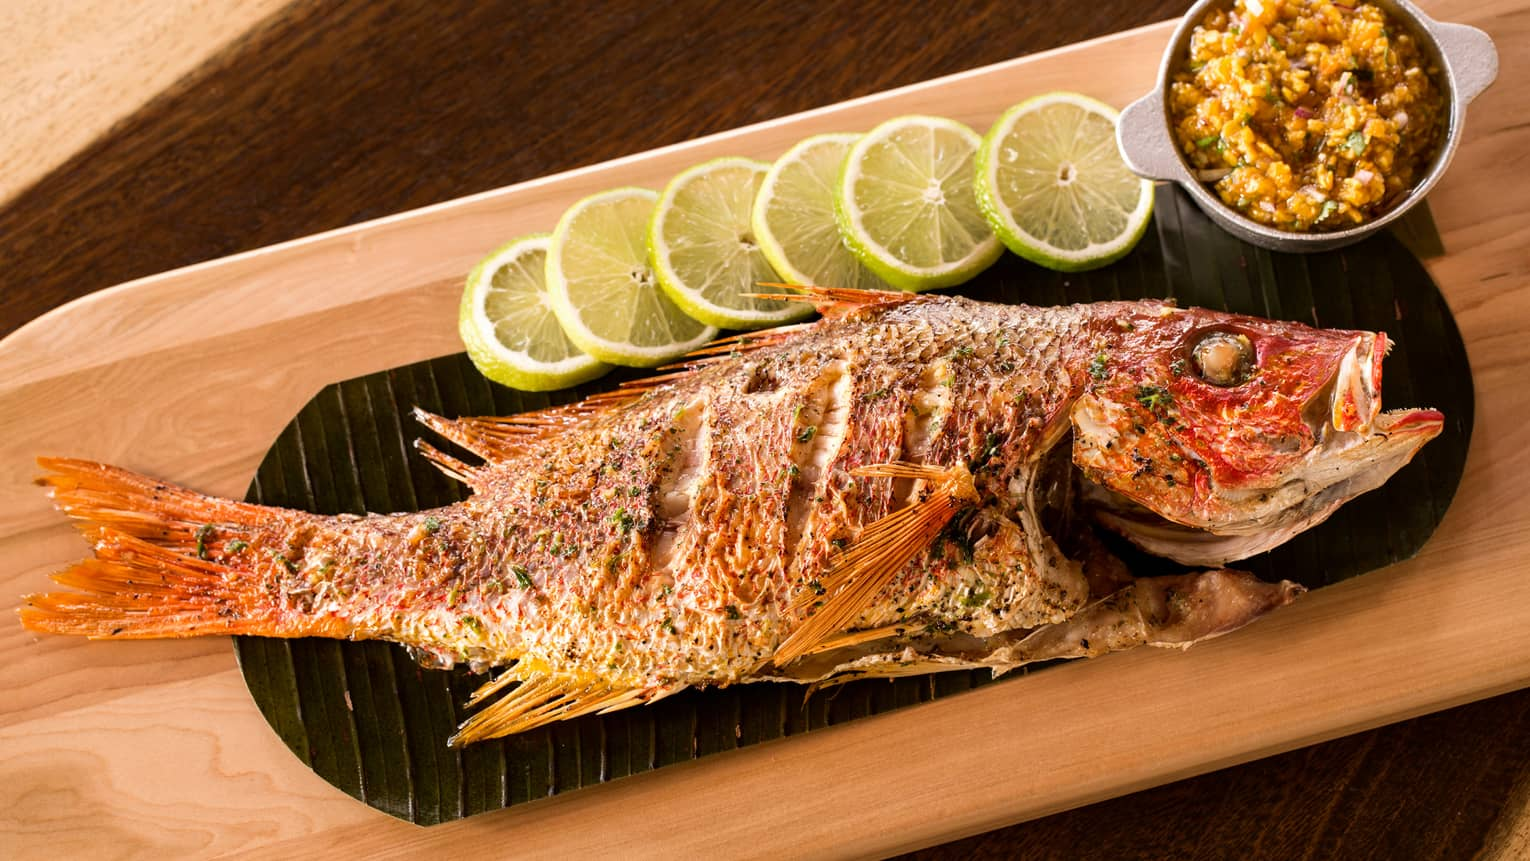 Whole grilled fish with marinated, flaking skin on black platter with row of lemon slices, chayote slaw in bowl